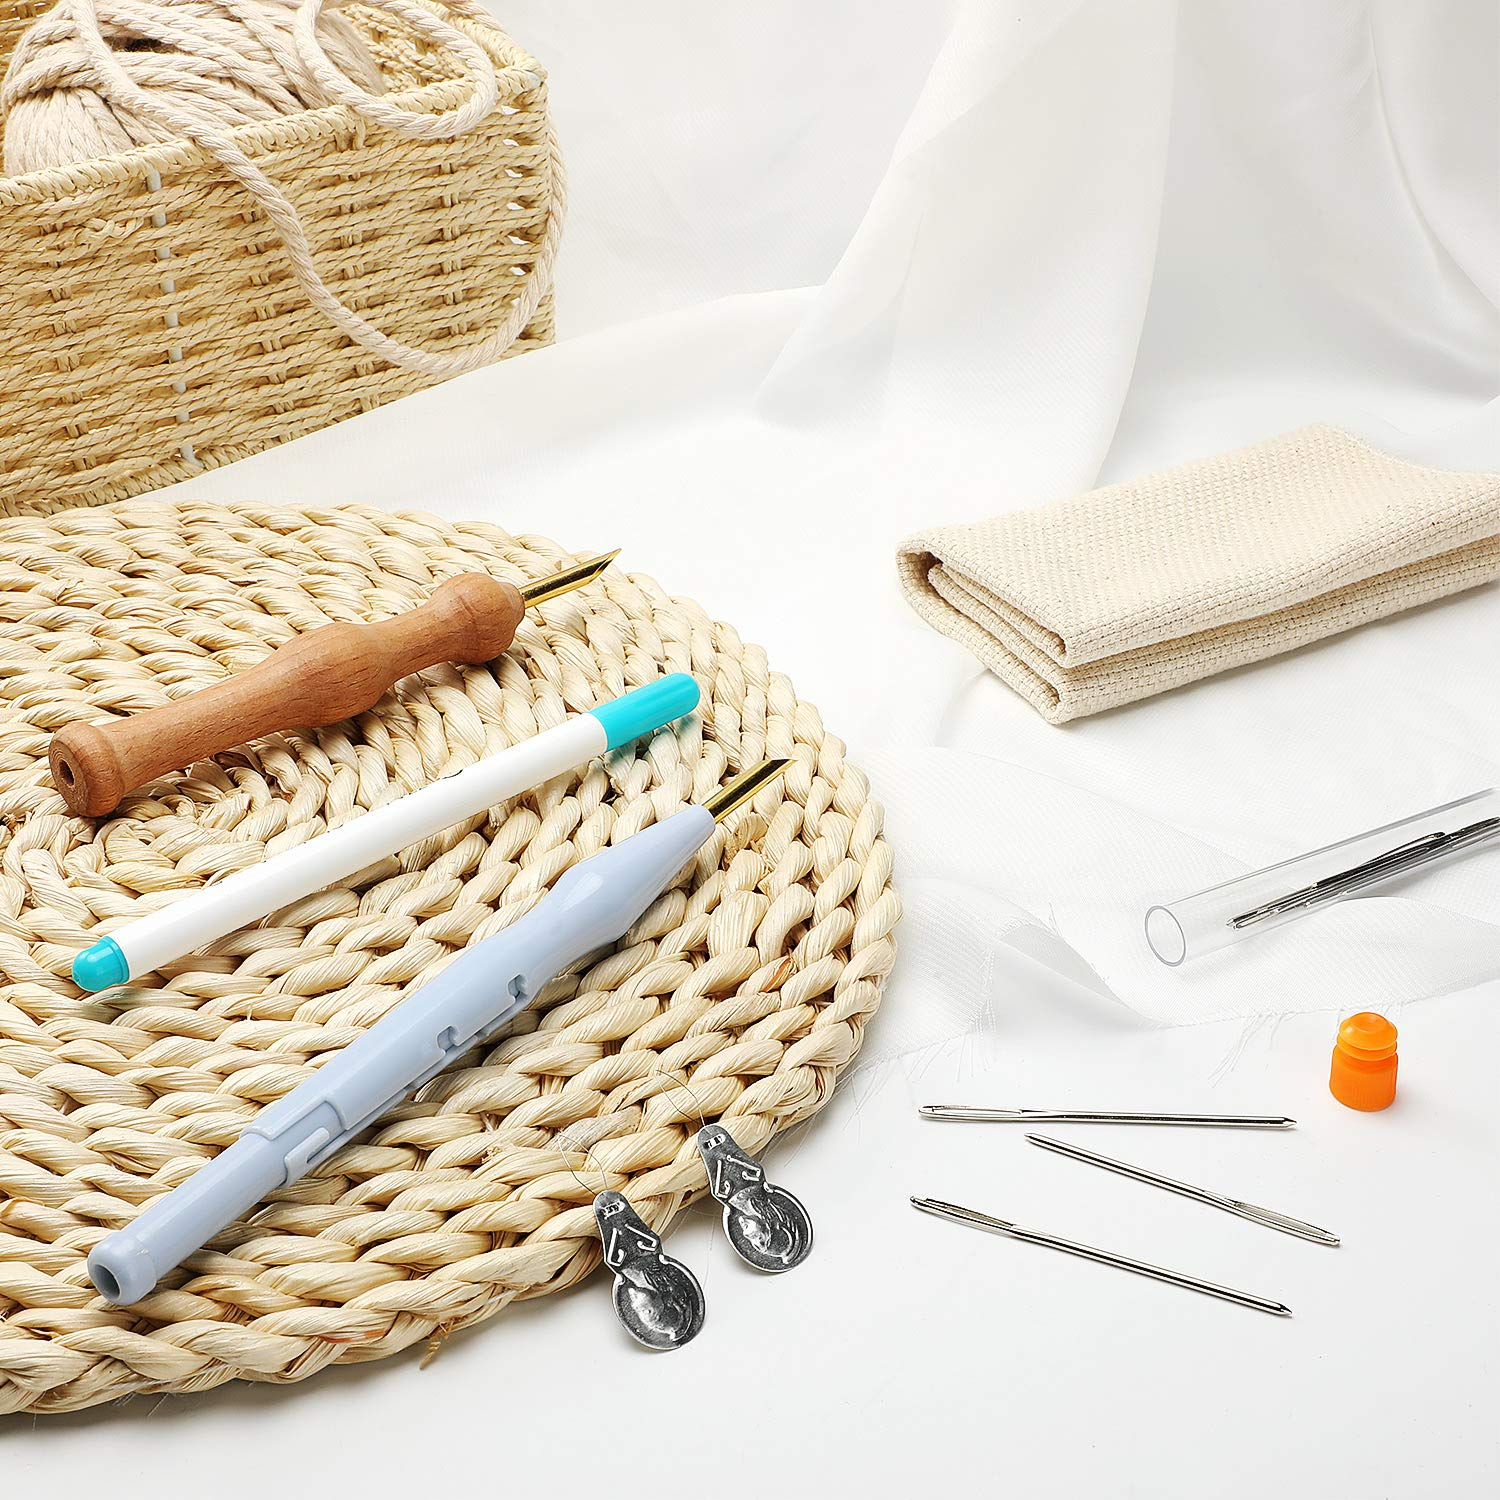 17 Pieces Punch Needle Embroidery Kits Adjustable Rug Yarn Punch Needle, Wooden Handle Embroidery Pen, Needle Threader, Punch Needle Cloth for Embroidery Floss Cross Stitching Beginners